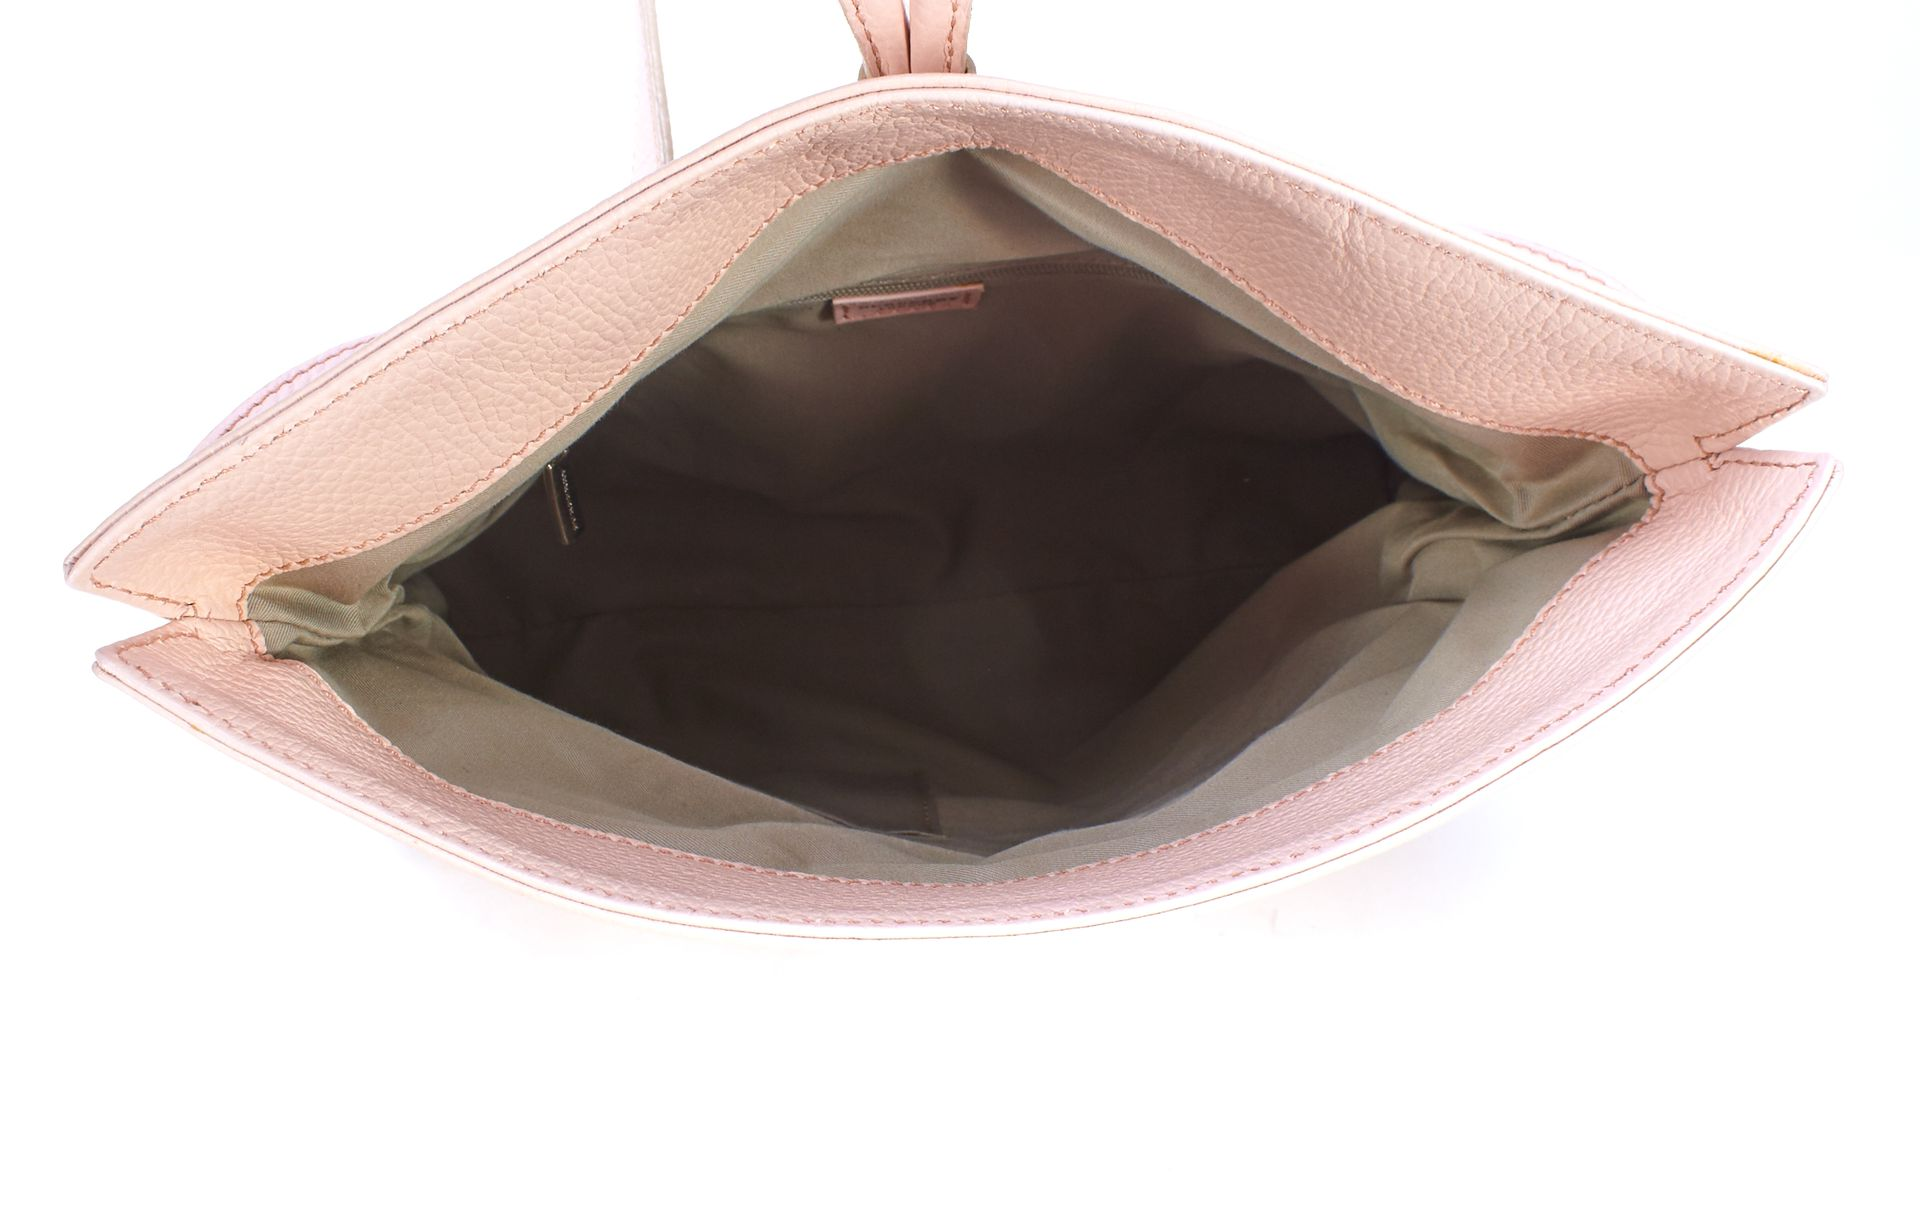 BURBERRY Pink Pebble Leather House Check Shark Tooth Shoulder Bag